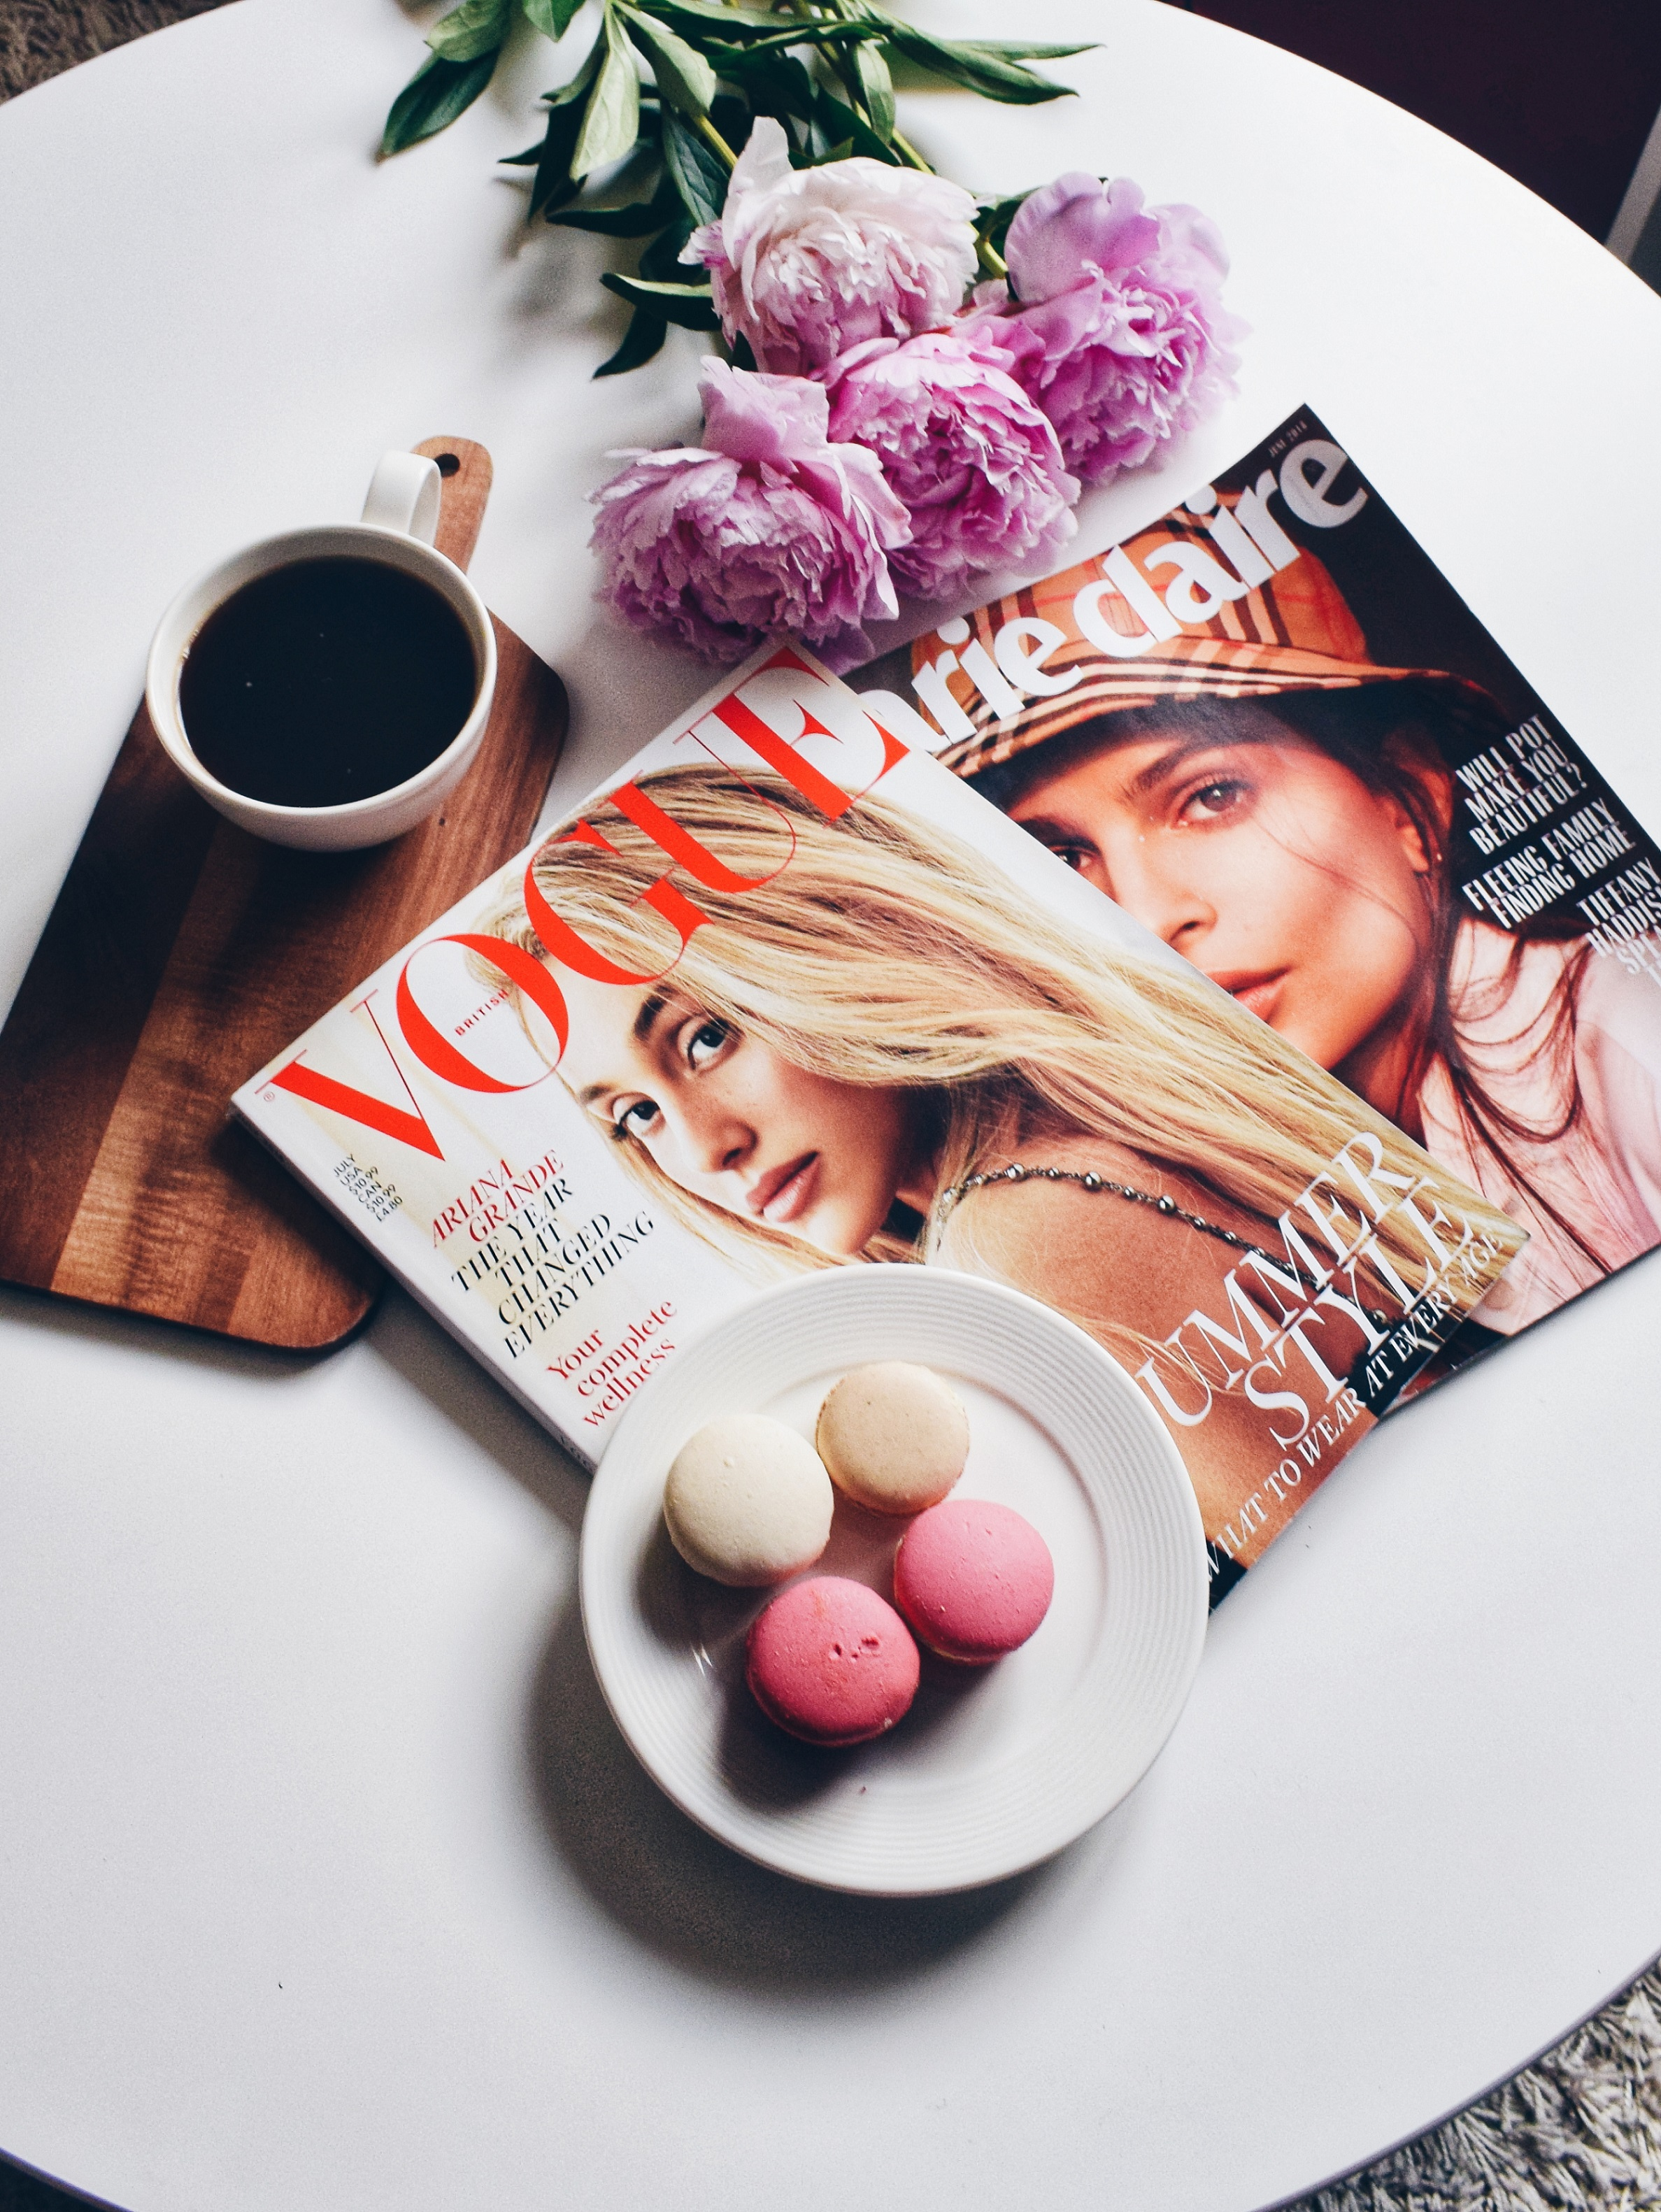 Outlandish blog unplug summer vacation holiday relax vogue coffee peonies macarons